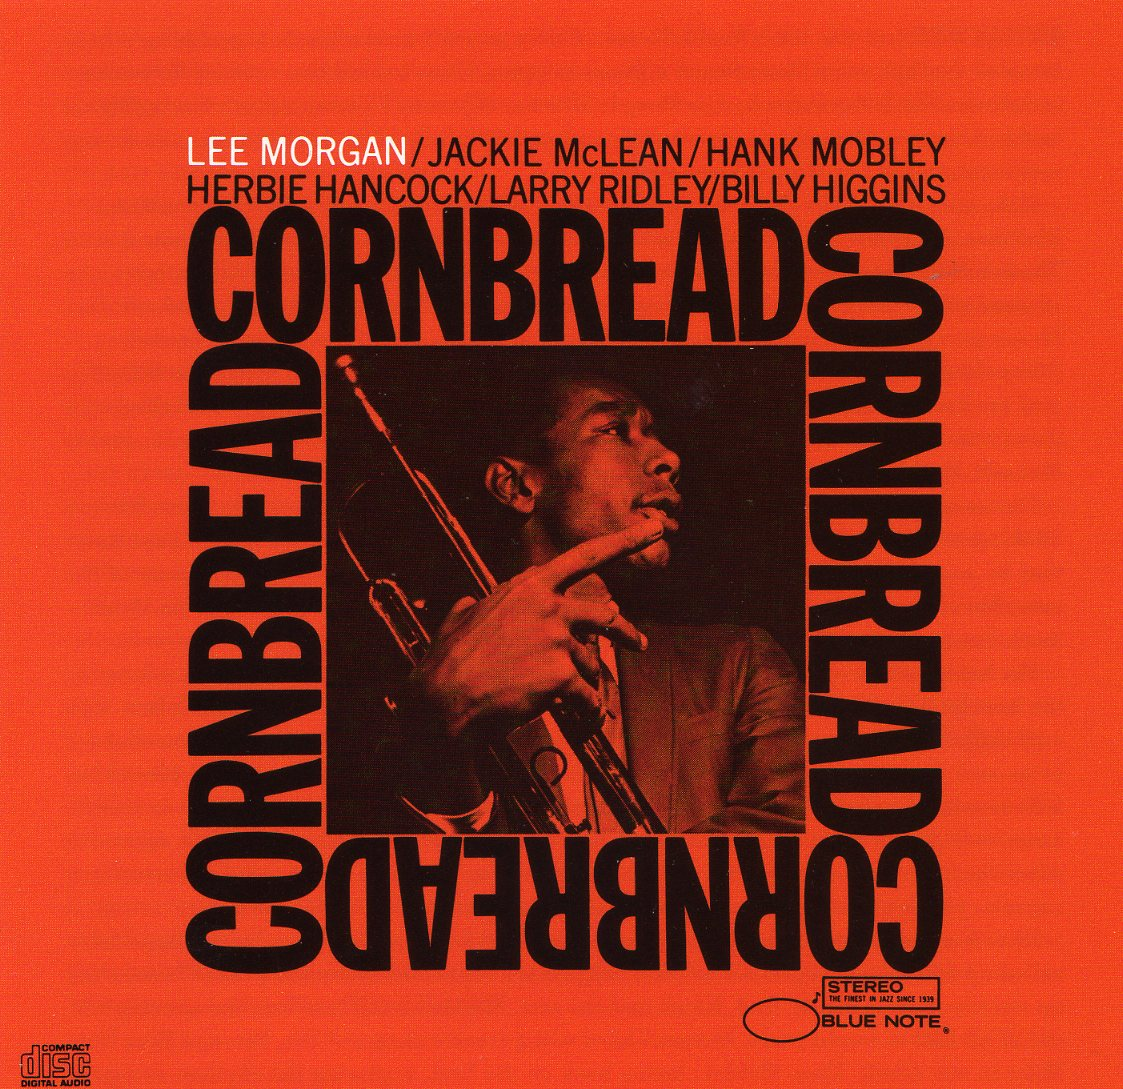 lee morgan - cornbread (sleeve art)